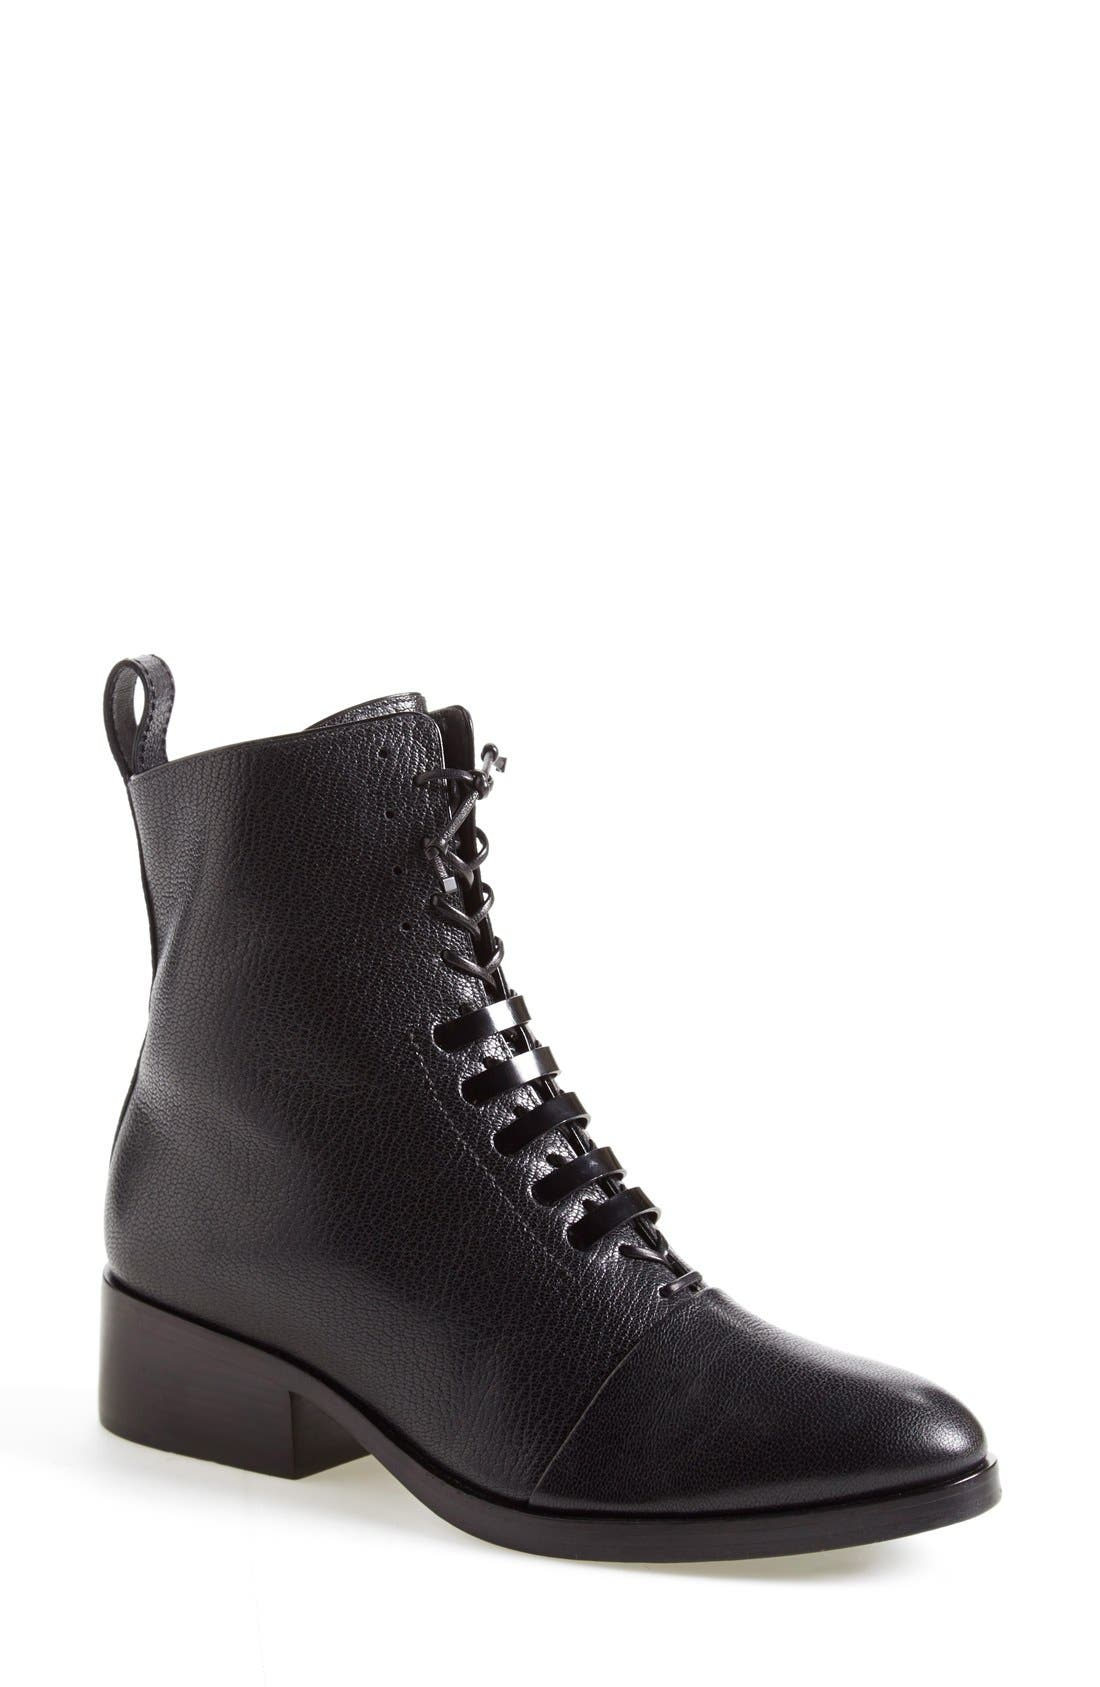 3.1 Phillip Lim 'Alexa' Lace-Up Ankle Boot (Women)